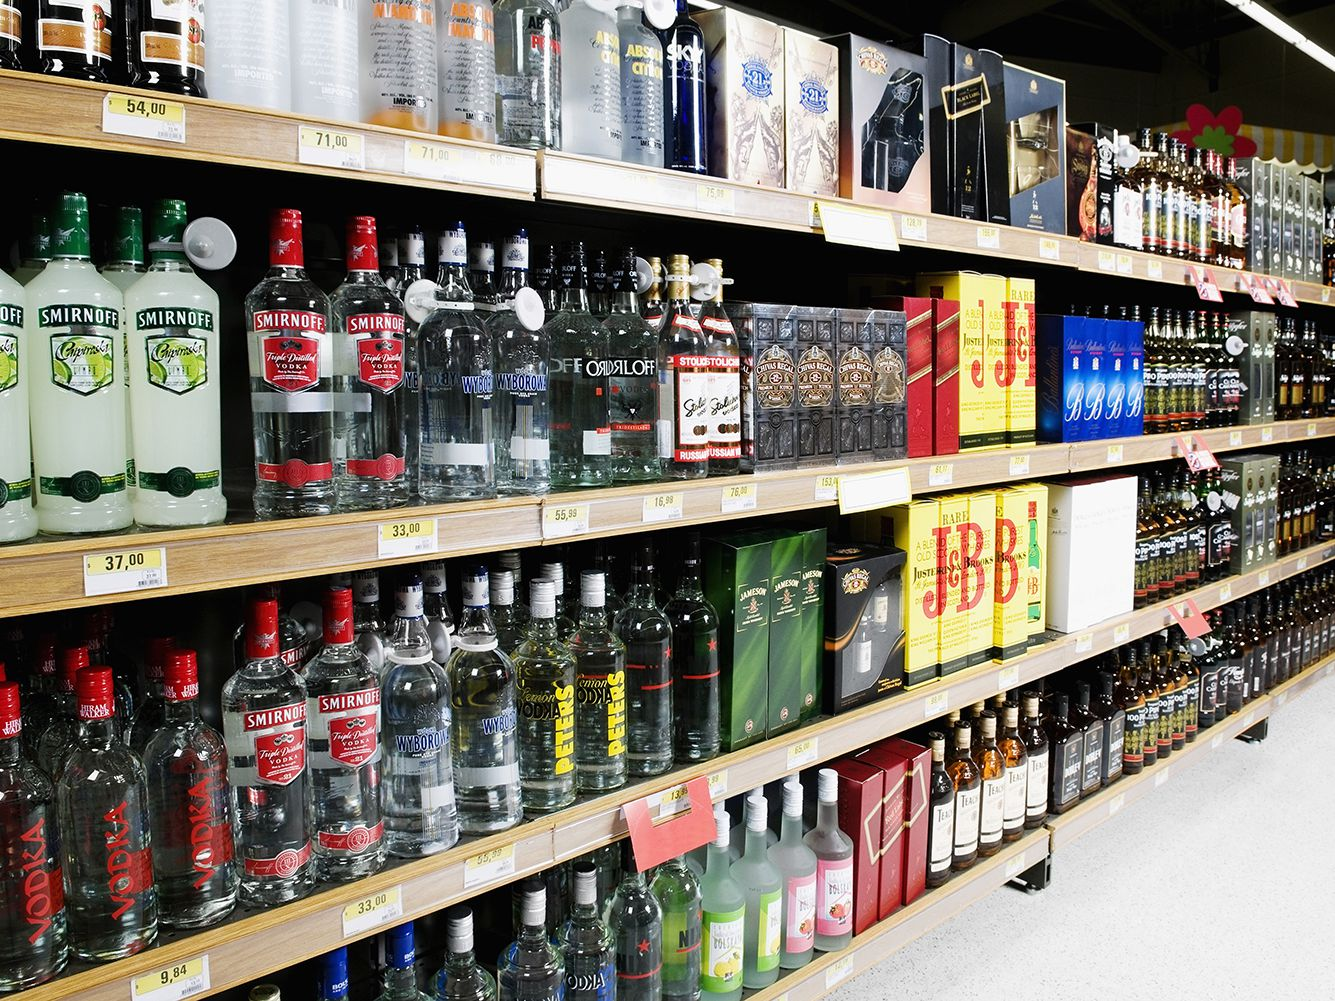 Using a P.I. to identify alcohol license breach